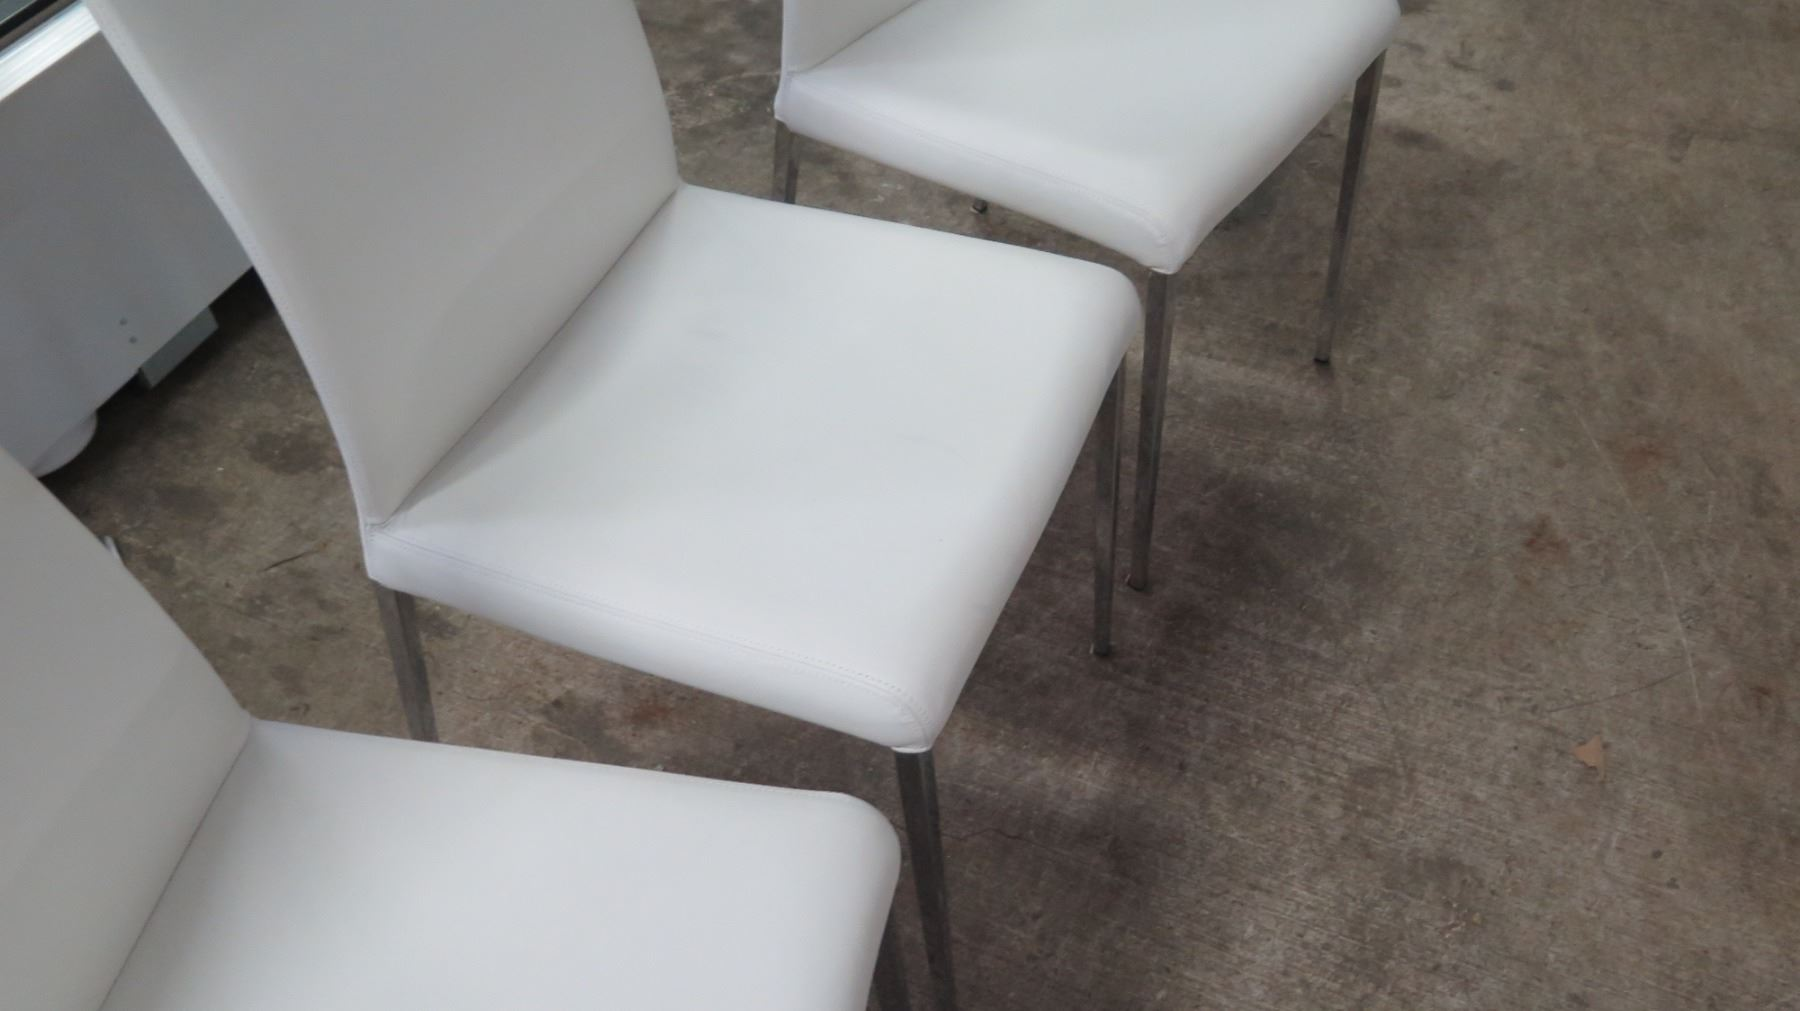 Phenomenal Qty 4 White Leather Chairs From Cattelan Italia 18W 41 5 Ibusinesslaw Wood Chair Design Ideas Ibusinesslaworg